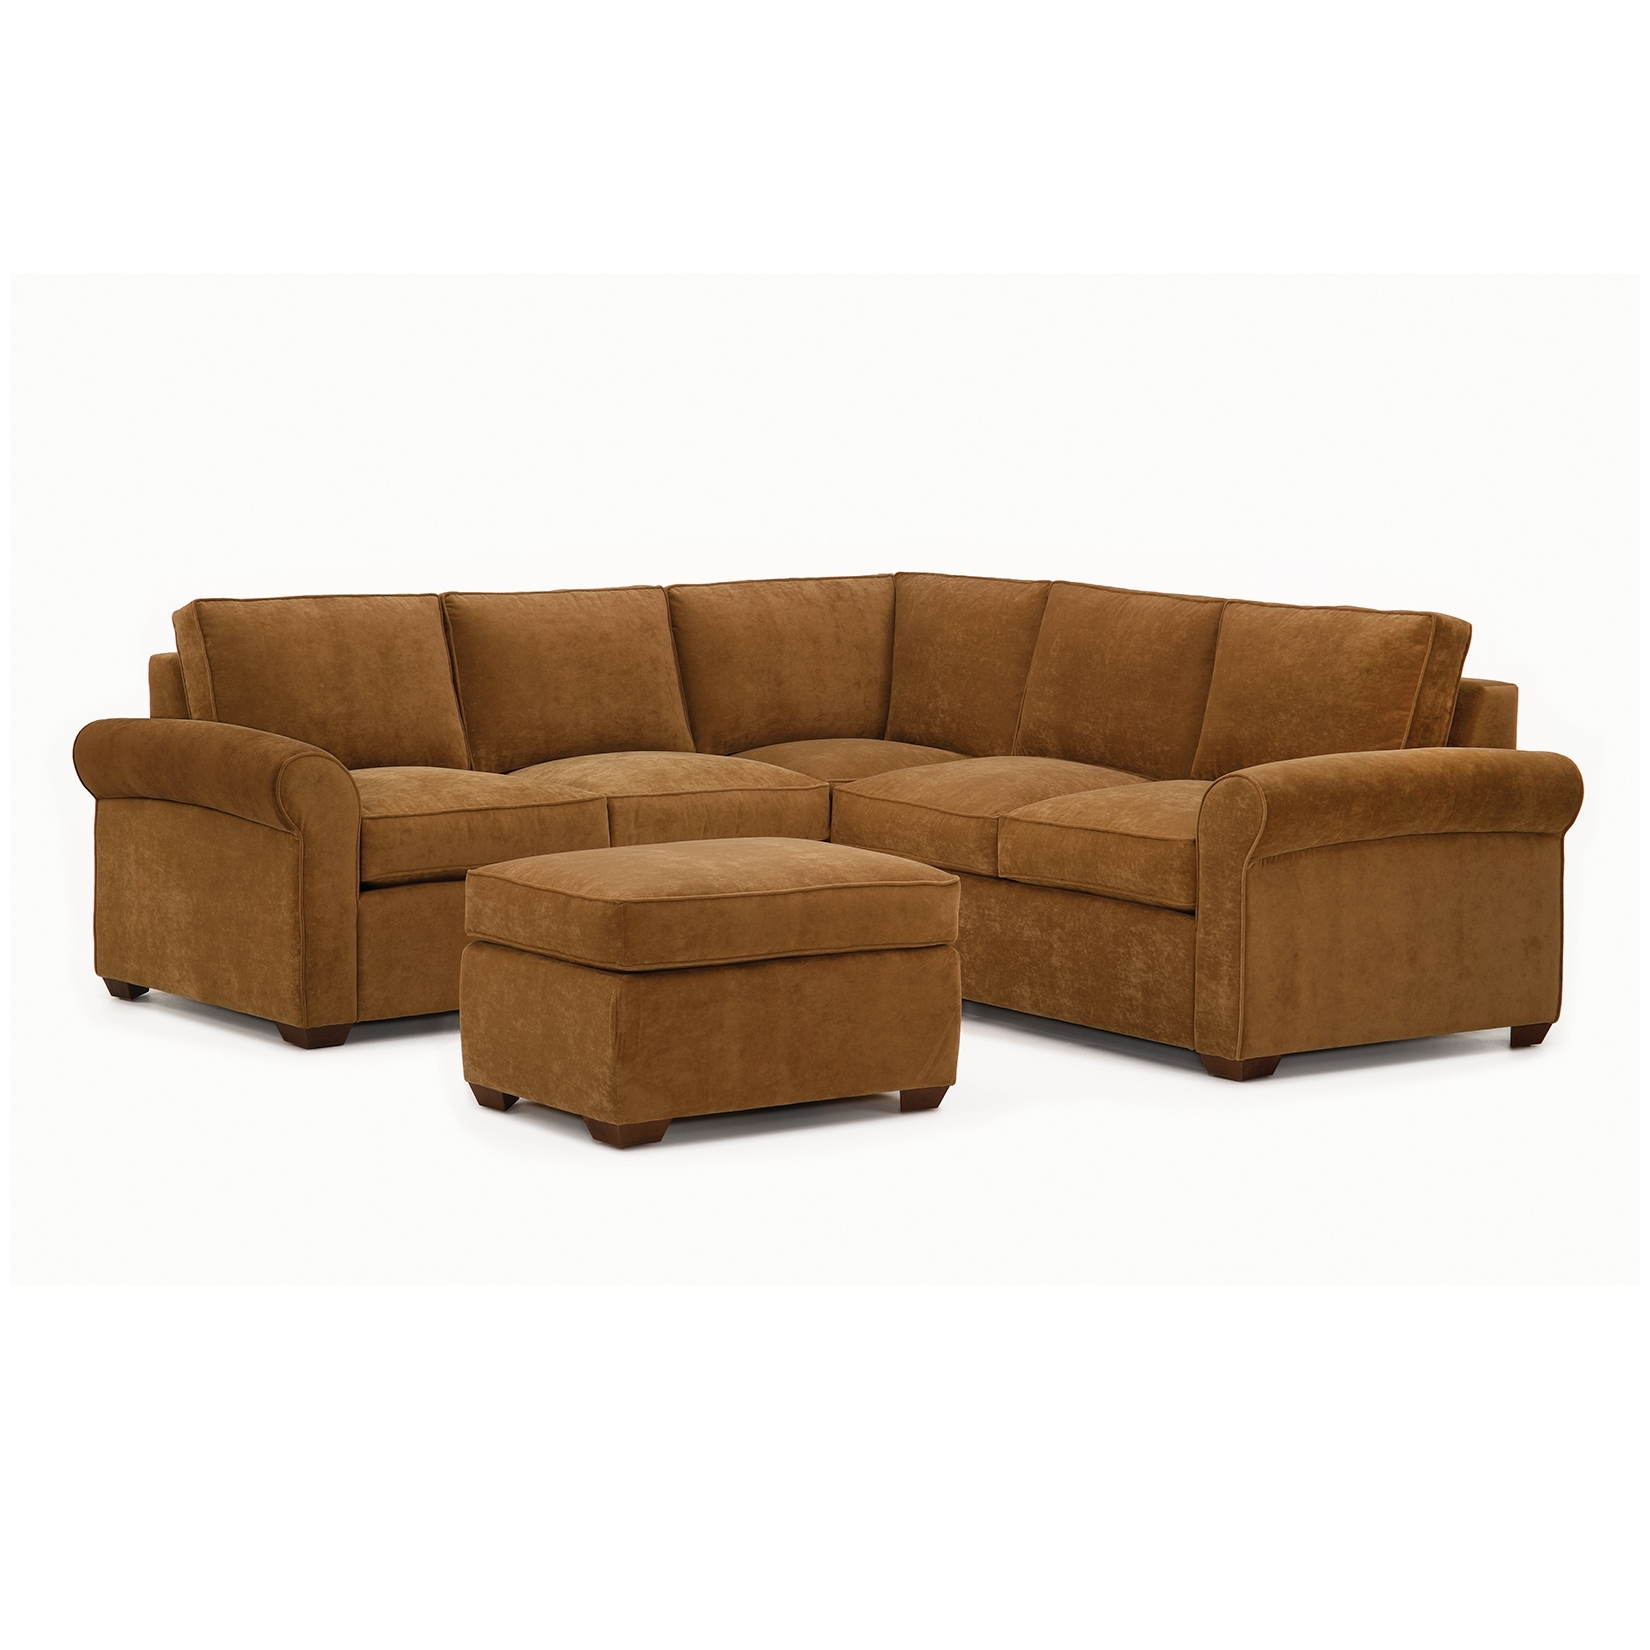 Sectional Archives – Lazar With Regard To Most Popular Panama City Fl Sectional Sofas (View 18 of 20)